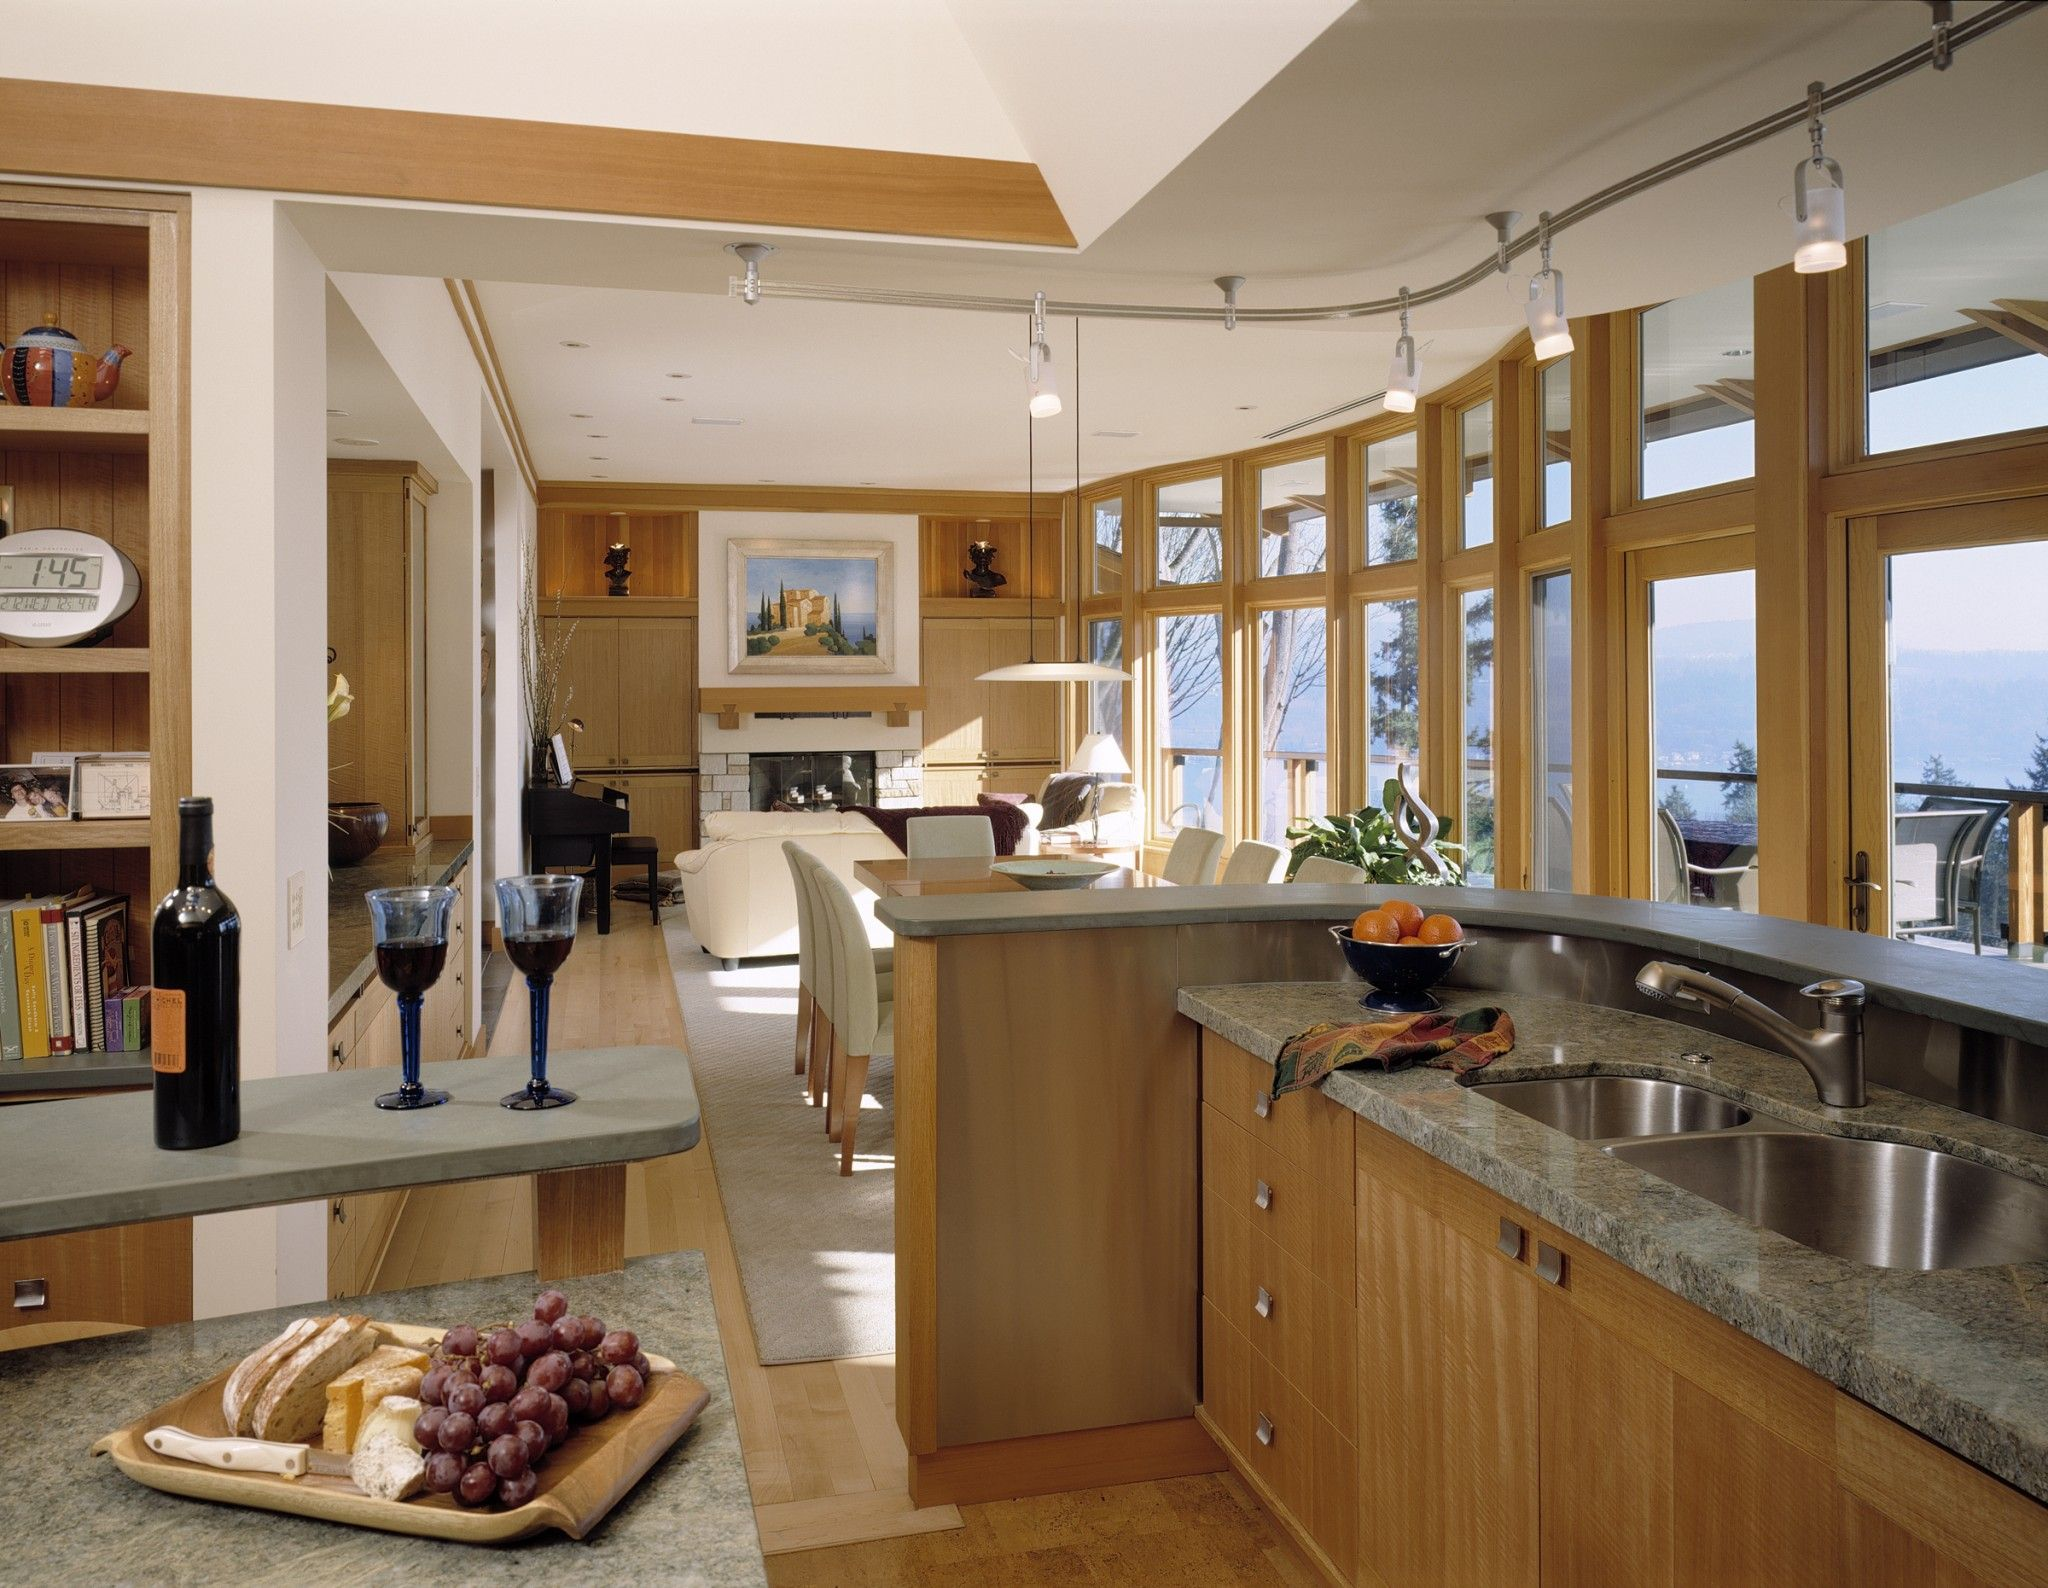 An open concept home where the kitchen